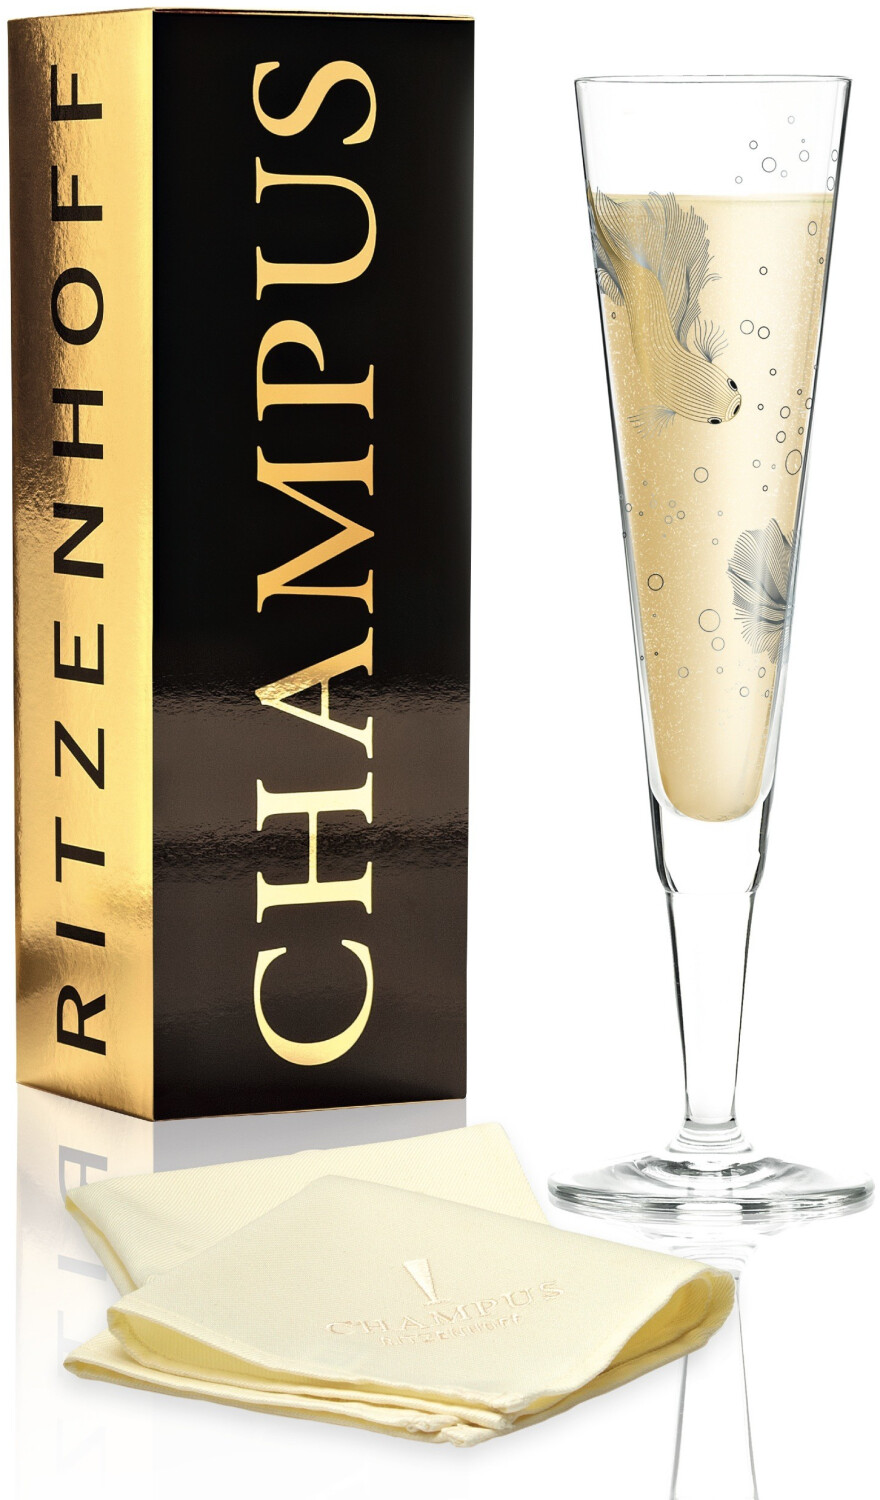 Image of Ritzenhoff Champagne glass with napkin Champus 2019